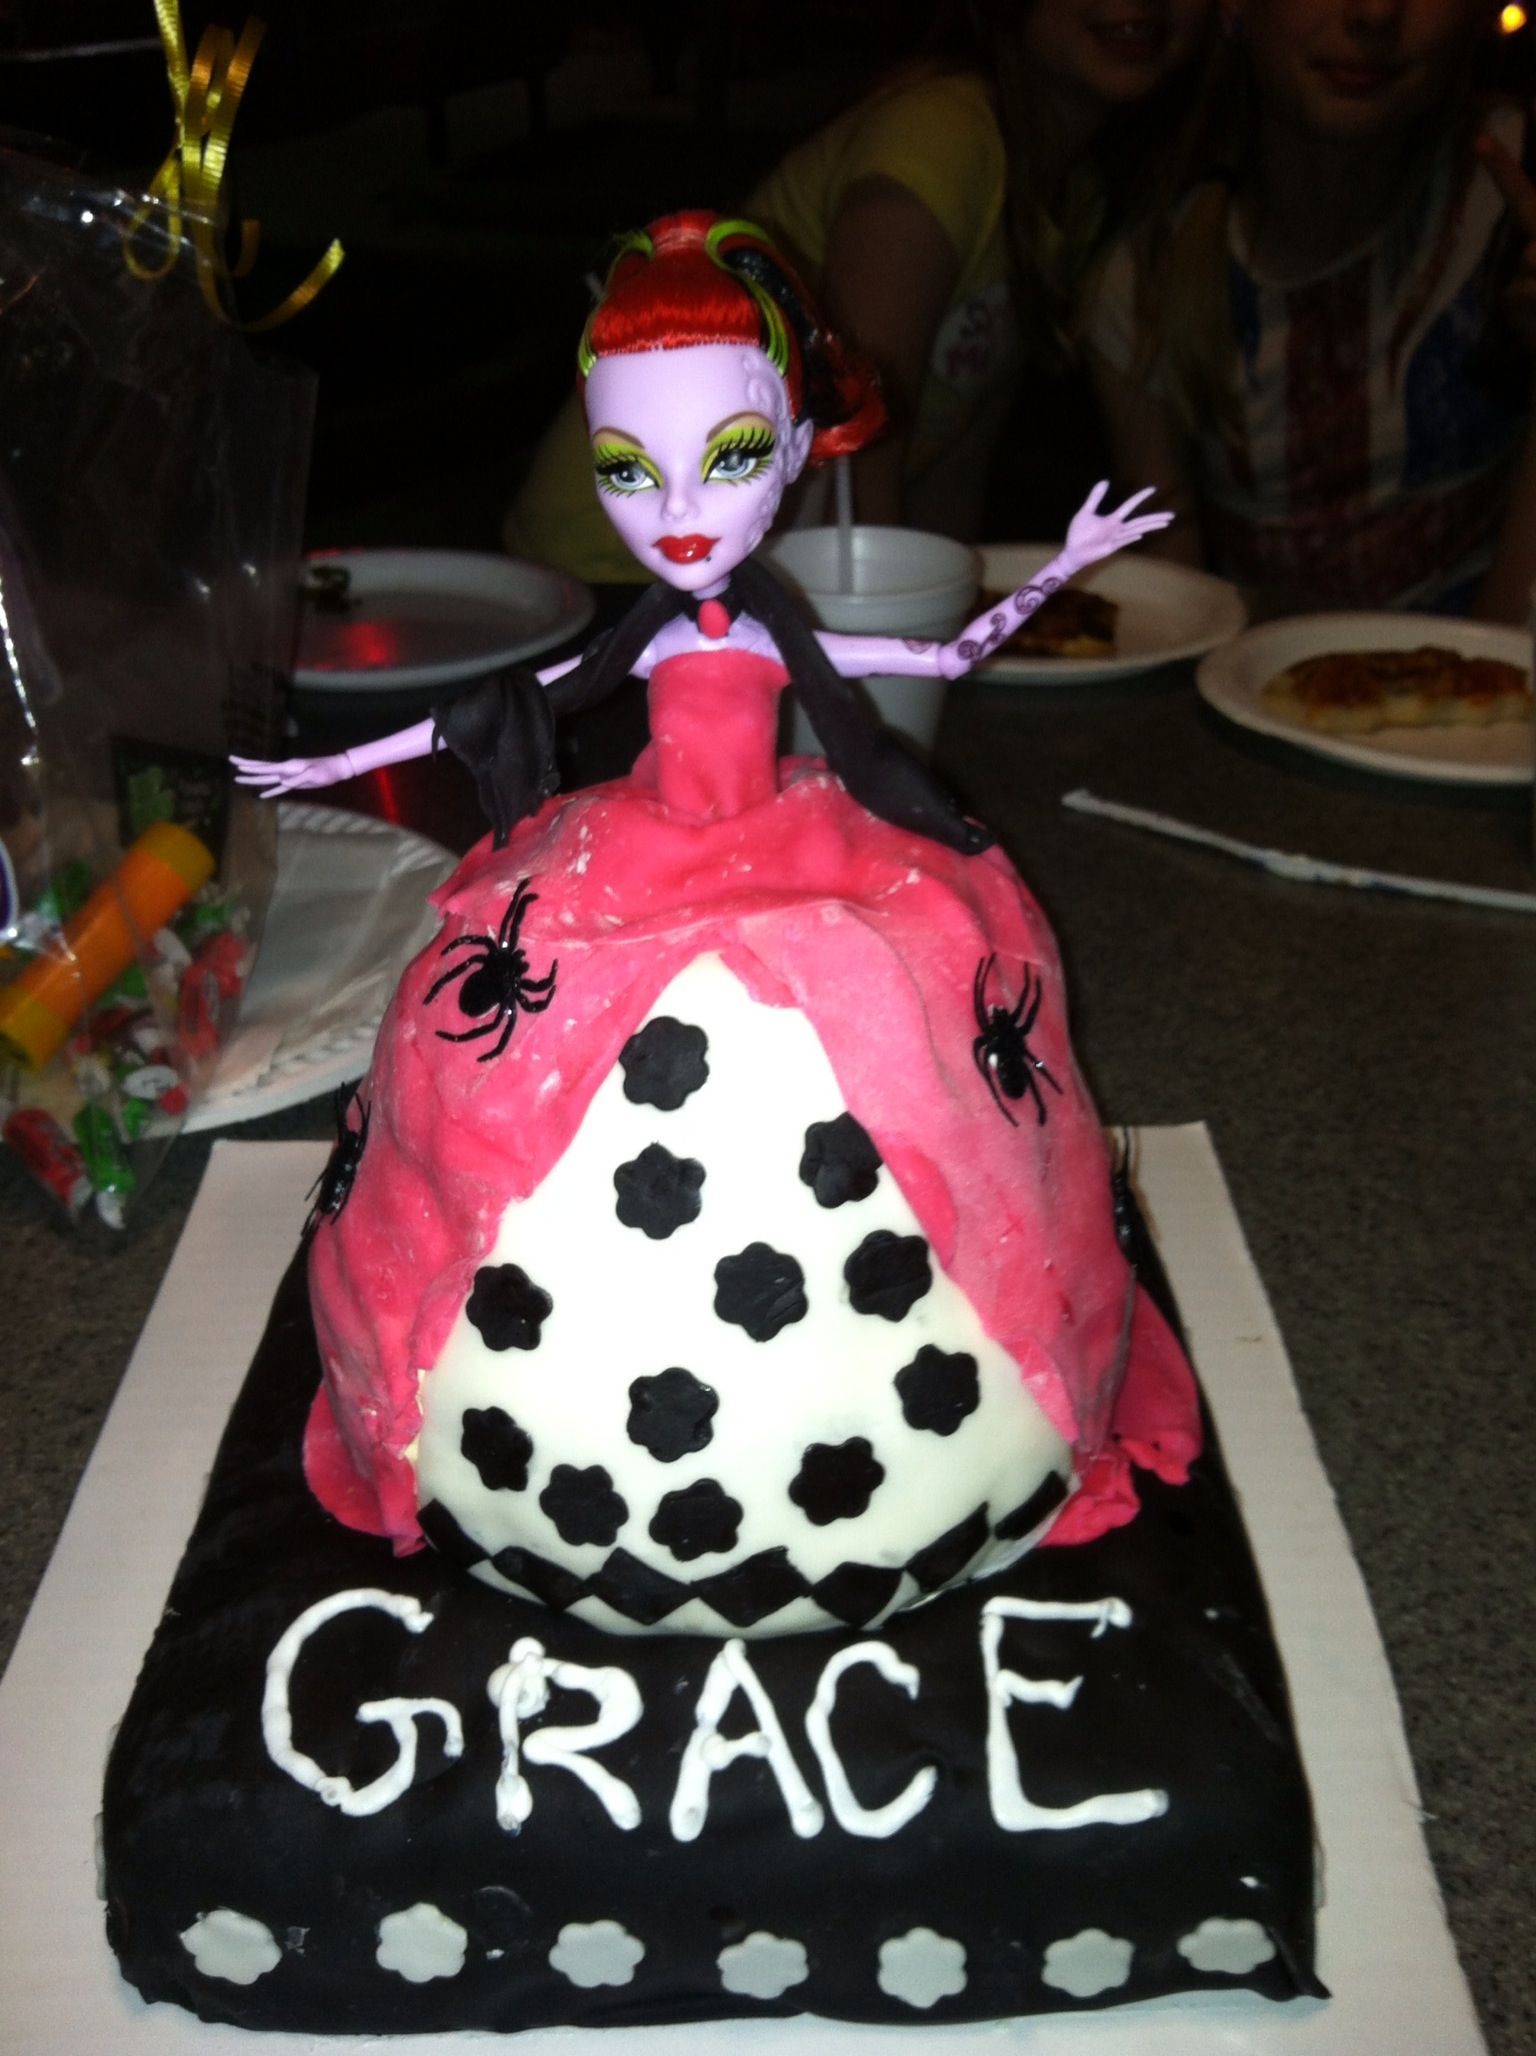 Monster high cake. I made this by sticking a monster high doll in the hole of a bunt cake. It stayed upright by sticking the feet of the doll in the bottom layer of cake. The dress is fondant.